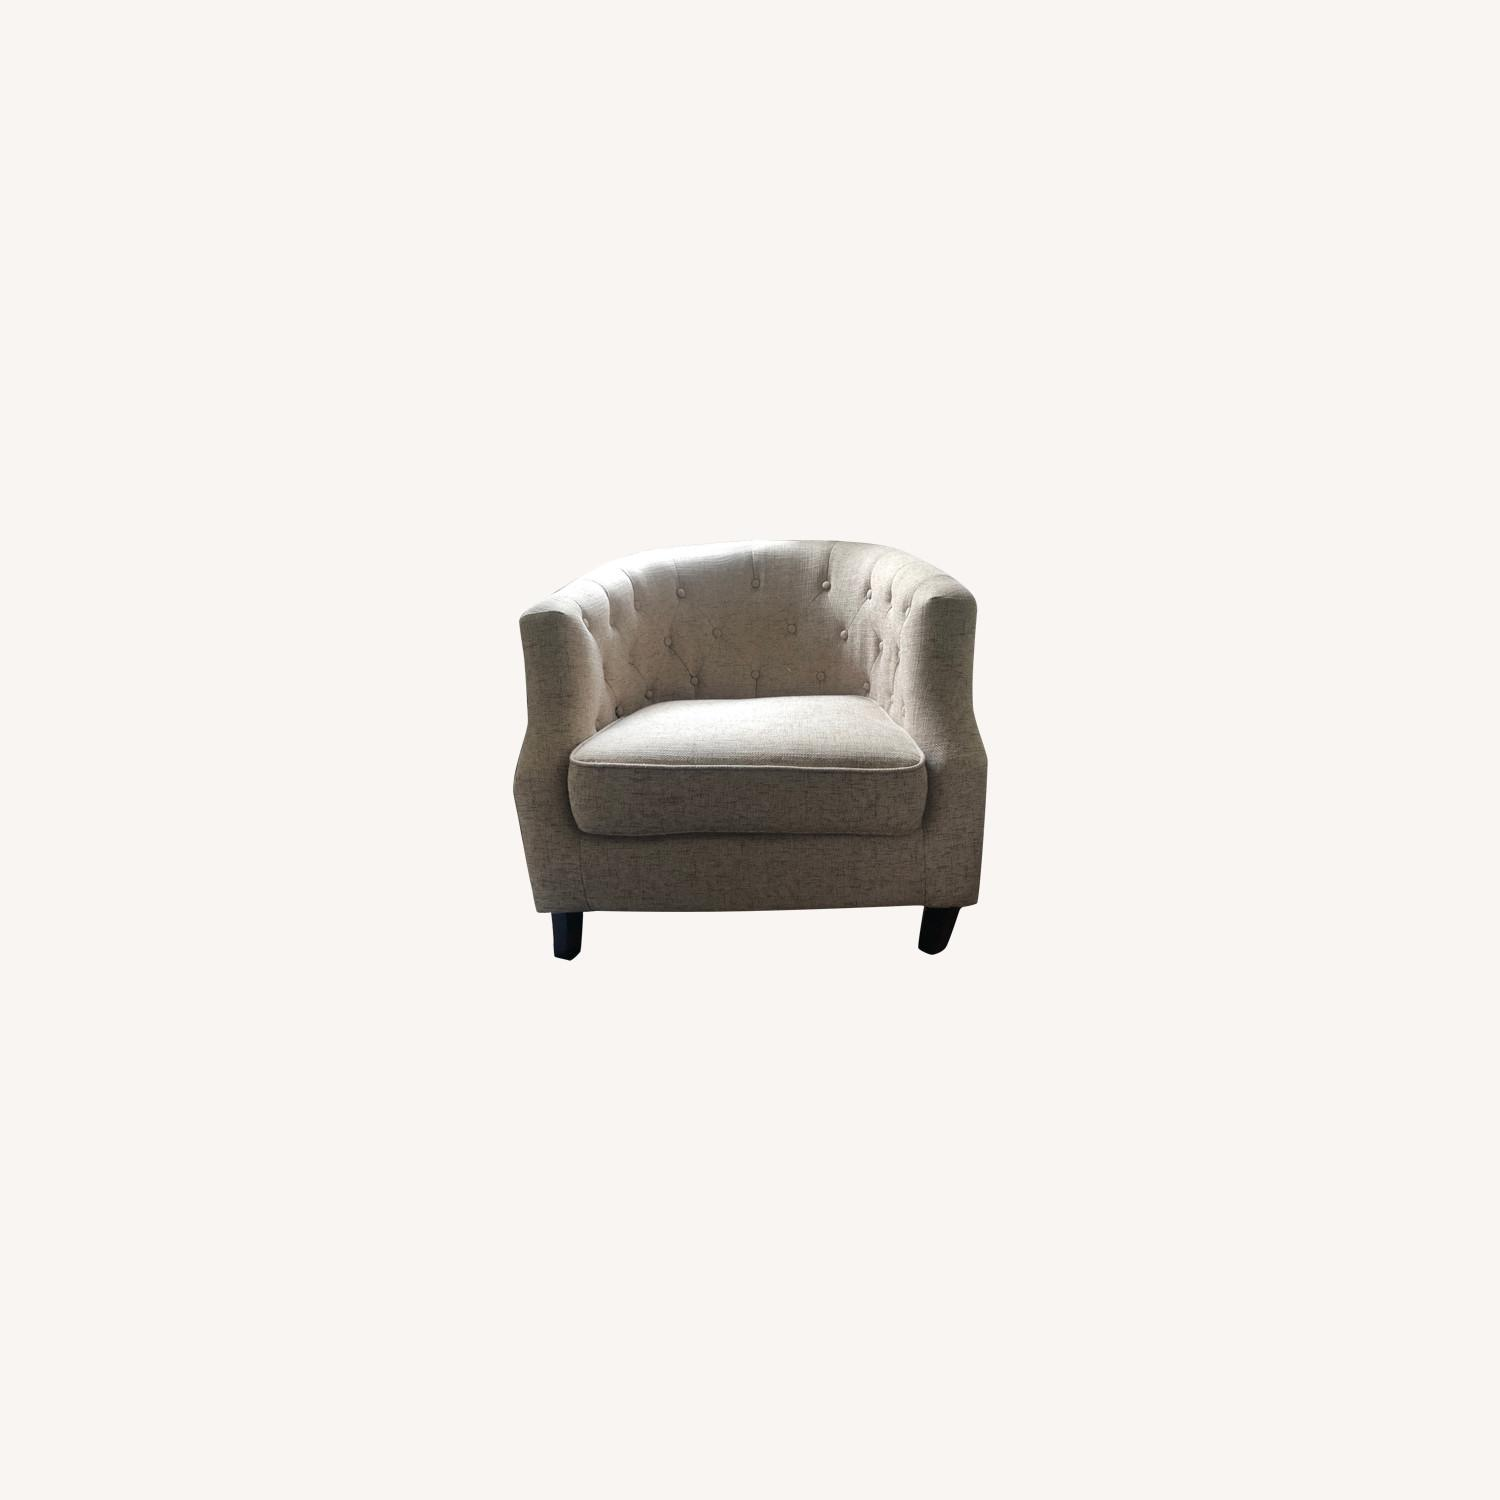 Ansley Arm Chair - image-3